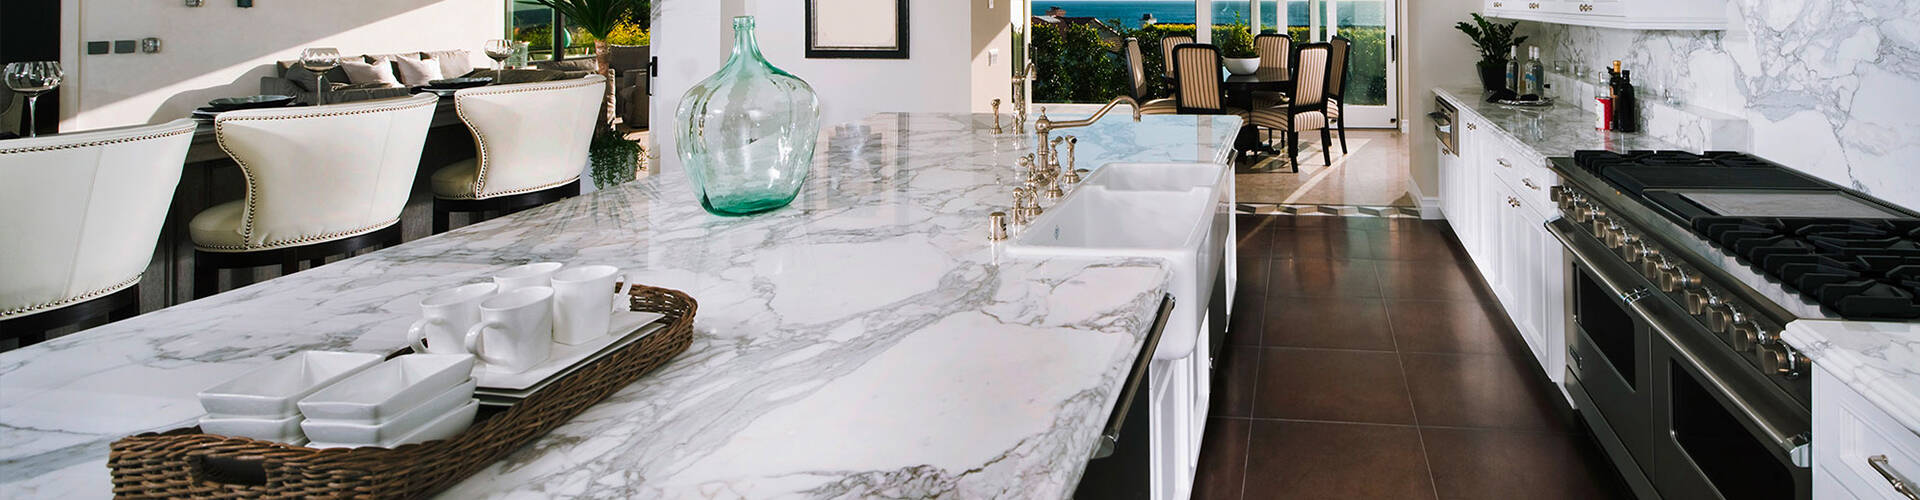 Granite Kitchen Countertops